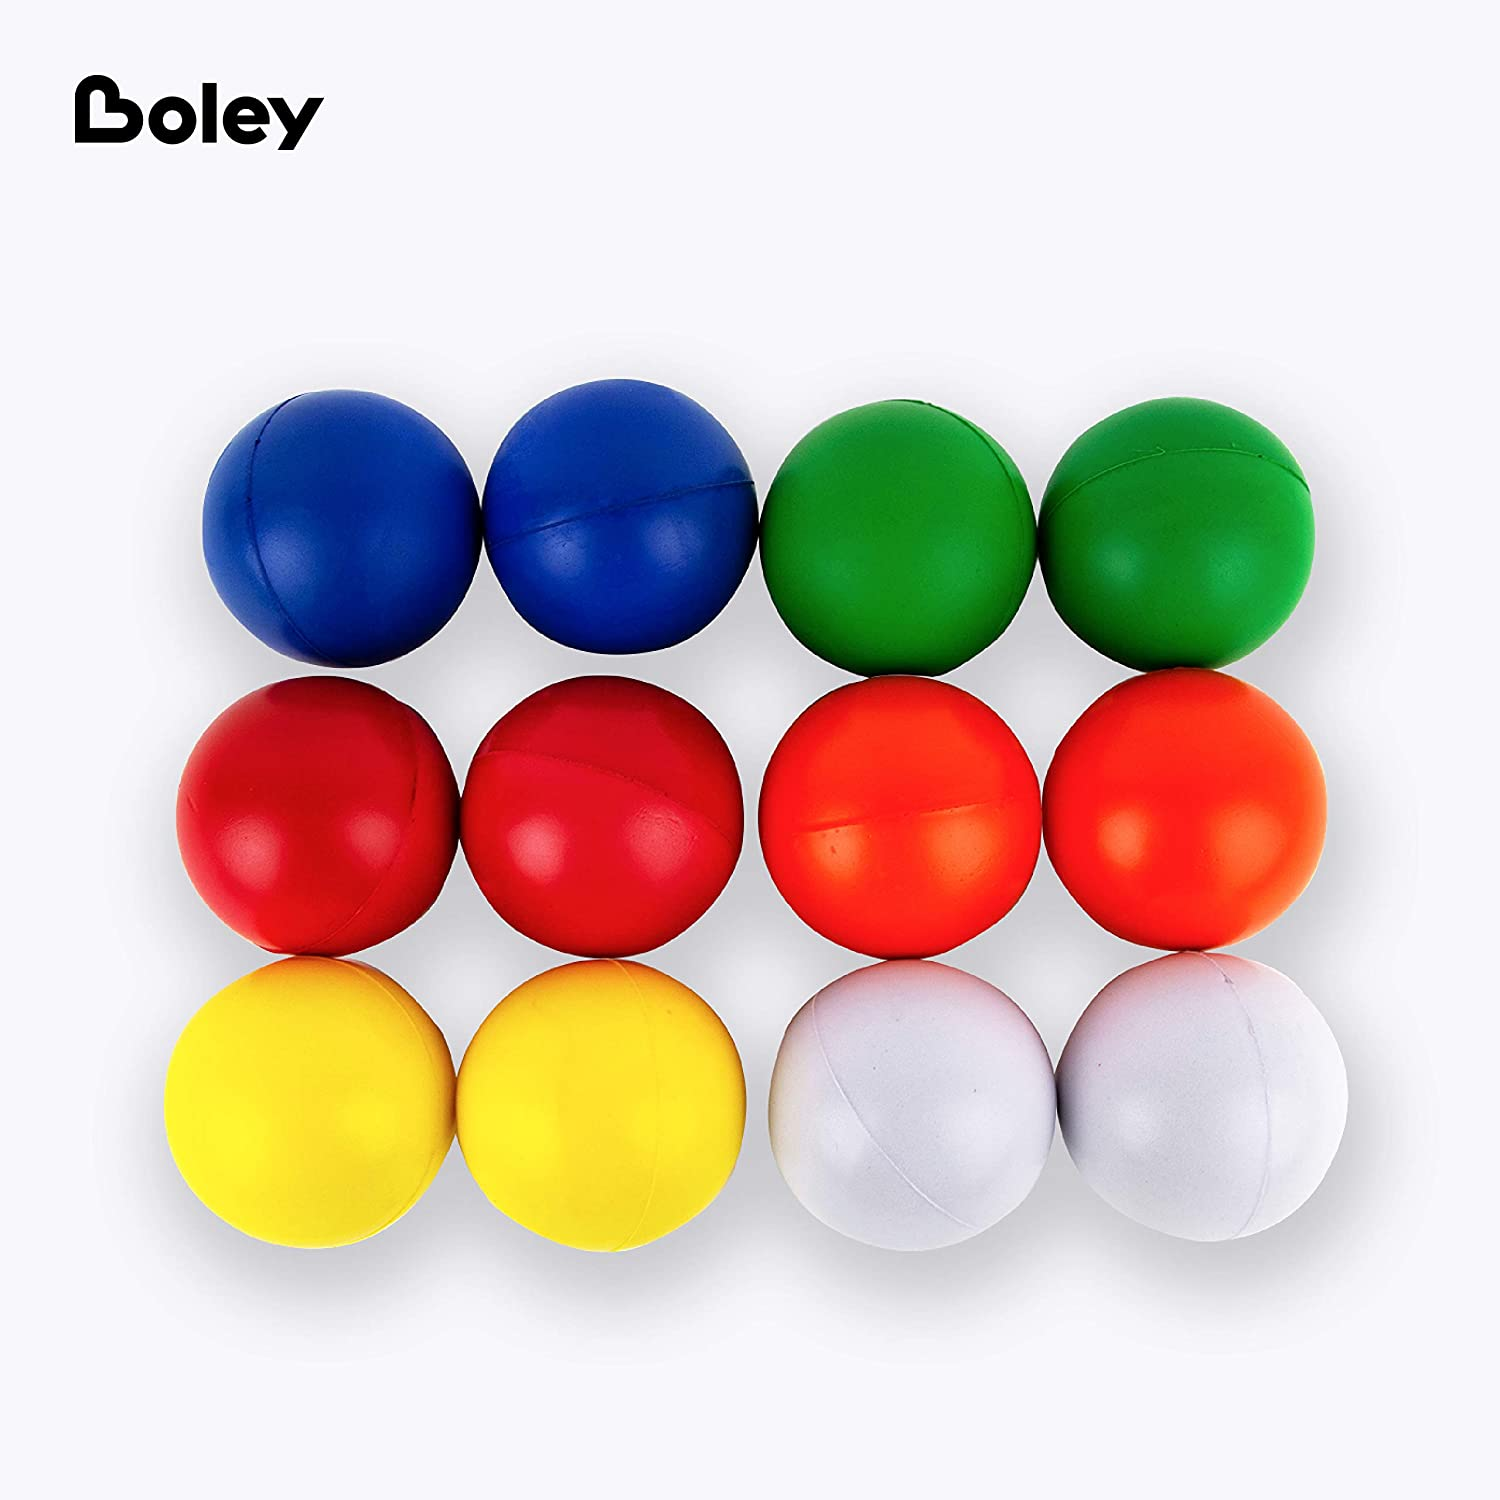 Boley Foam Stress Ball Set 12 Pack Small Stress Balls for Kids and Adults Squishy Squeeze Stretch Round Foam Fidget Balls in Bulk Anxiety ADHD Autism and Stress Relief Ball Set